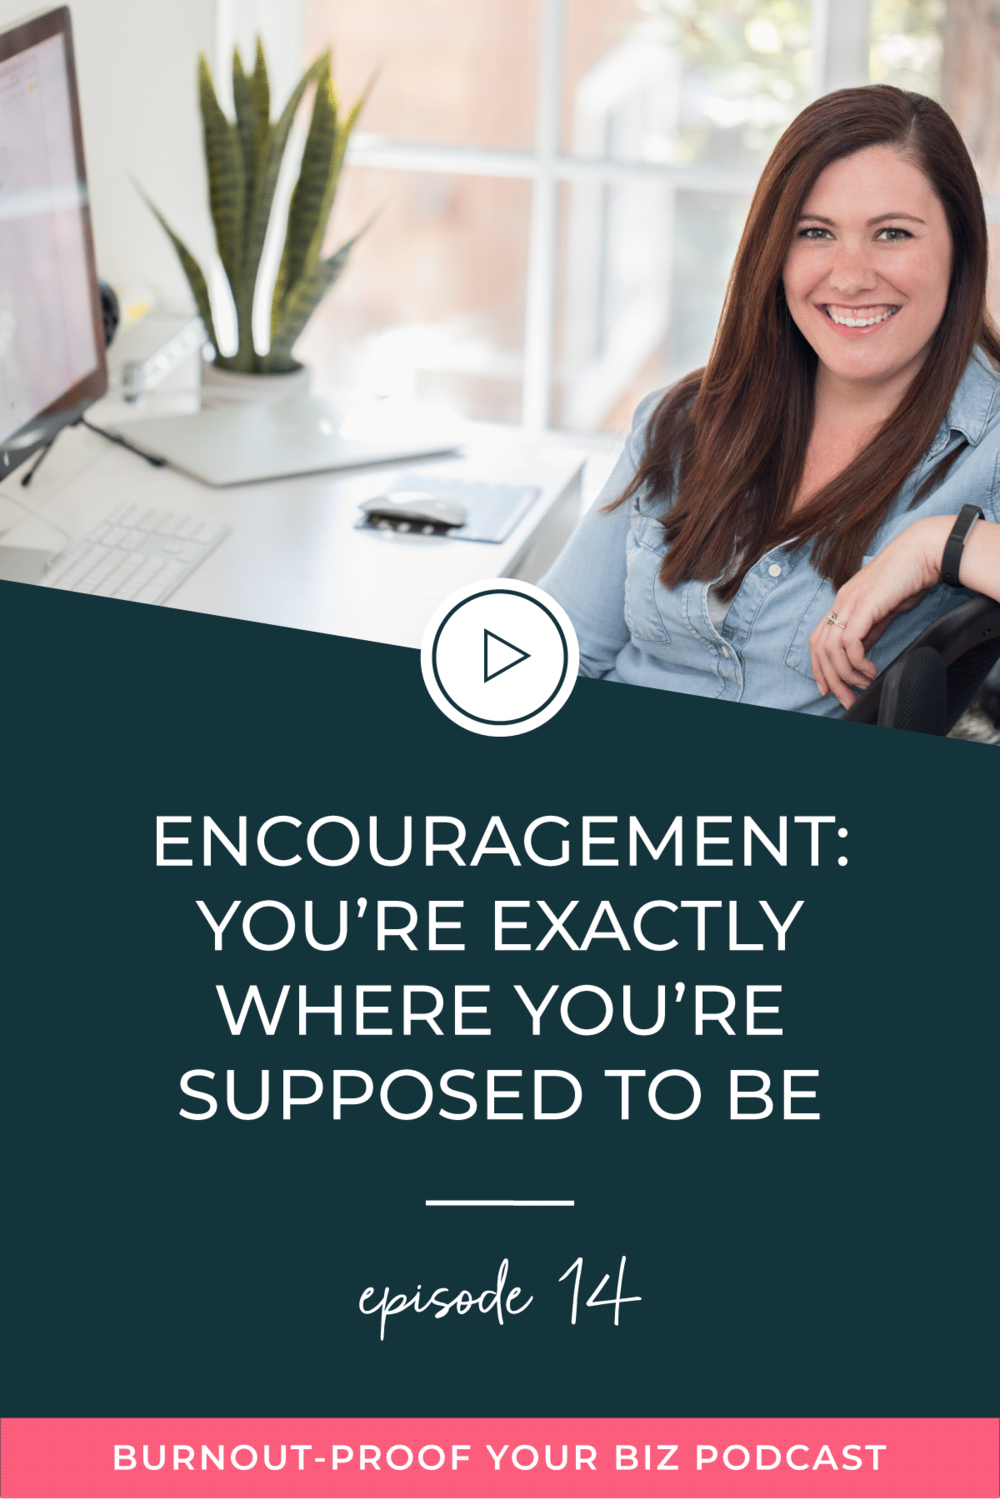 Burnout-Proof Your Biz Podcast with Chelsea B Foster | Episode 014 - Encouragement: You're Exactly Where You're Supposed To Be | Learn how to run your biz and live your dream life on your own terms without the fear of burnout.